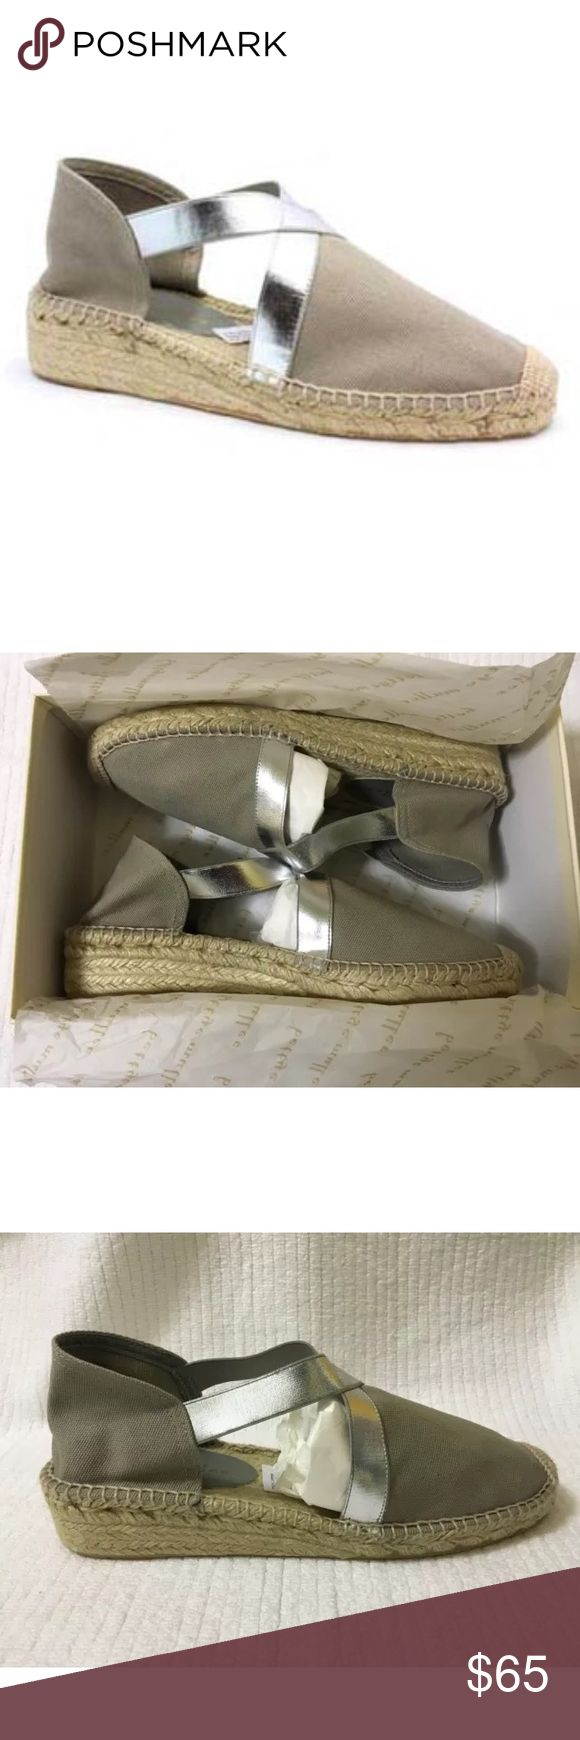 """Bettye Muller Gray Silver espadrille Retail $160  New in box with minor shelf wear.  Shimmery stay-put straps dress up this Bettye Muller espadrille. Try pairing it with your favorite day dresses and breezy boho blouses.  Canvas upper. Reinforced square toe. Open sides. Crisscross stretch metallic straps. Braided jute midsole. 1"""" demi-wedge heel. Rubber outsole provides traction. """"Lasso"""" is made in Spain. Bettye Muller Shoes Espadrilles"""